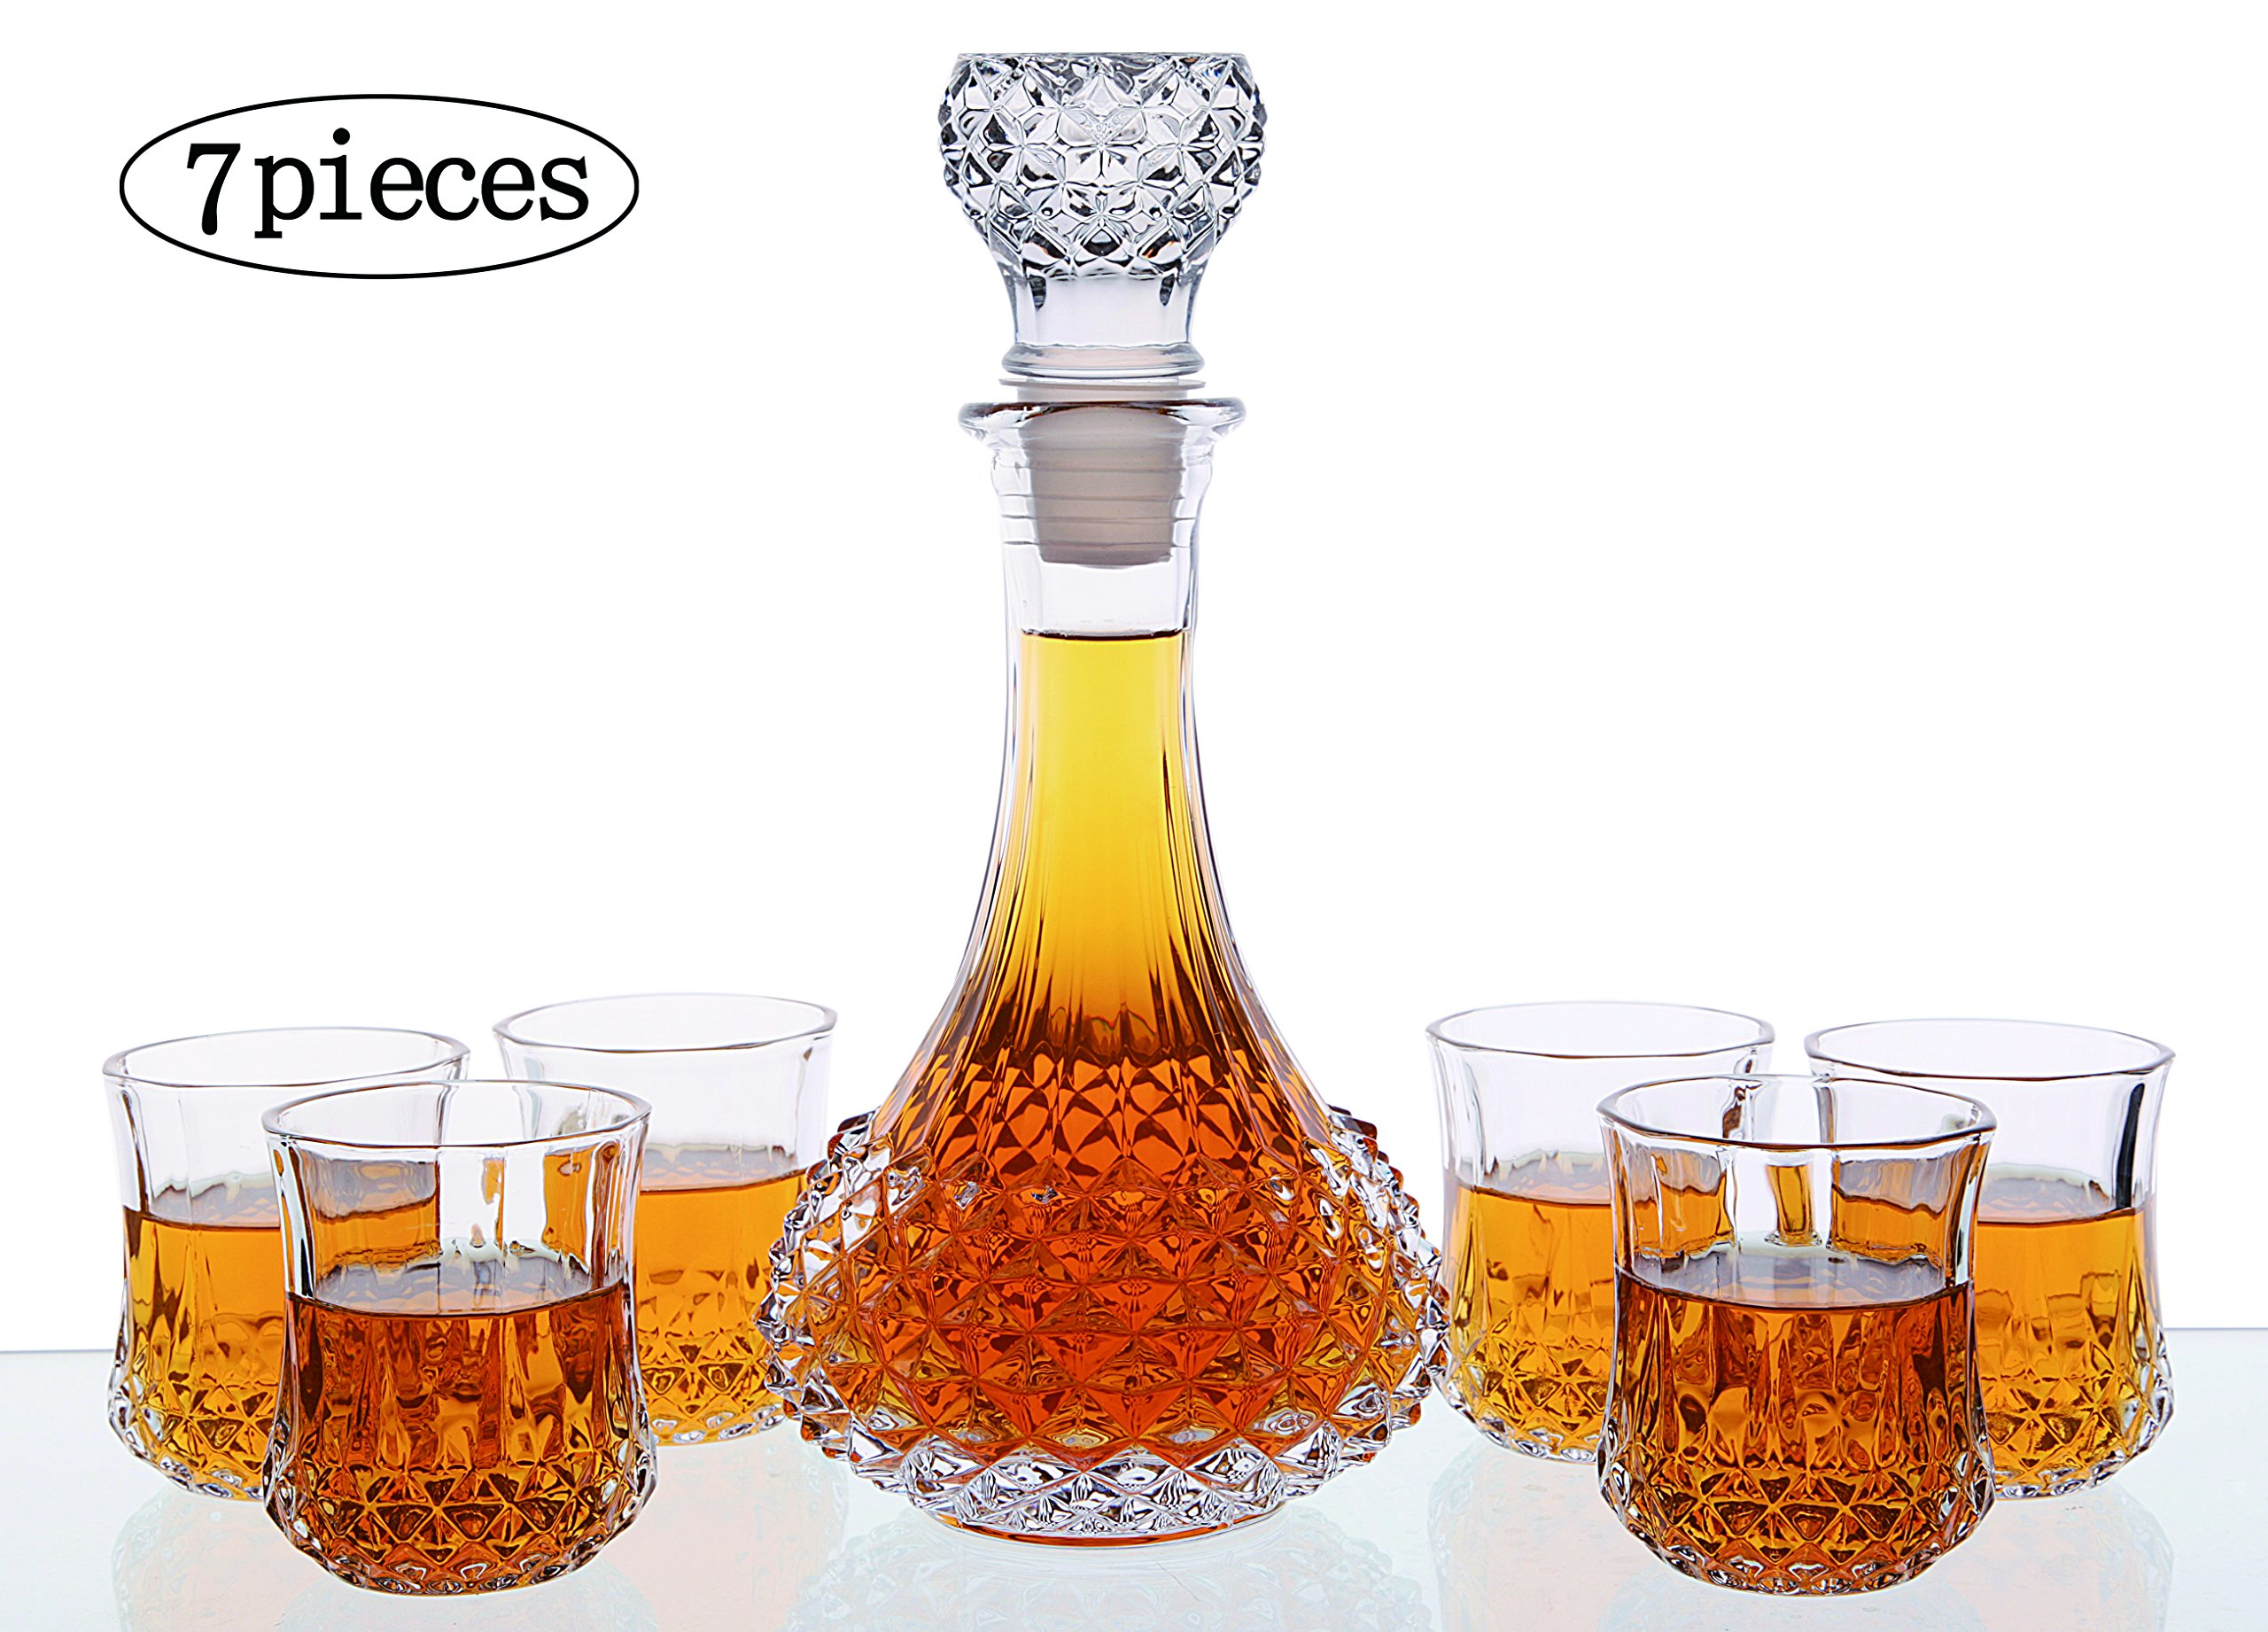 Whiskey Decanter And Glasses Bar Set, Includes Whisky Decanter And 6 Cocktail Glasses - 7 Piece Set Barware Gift for Men